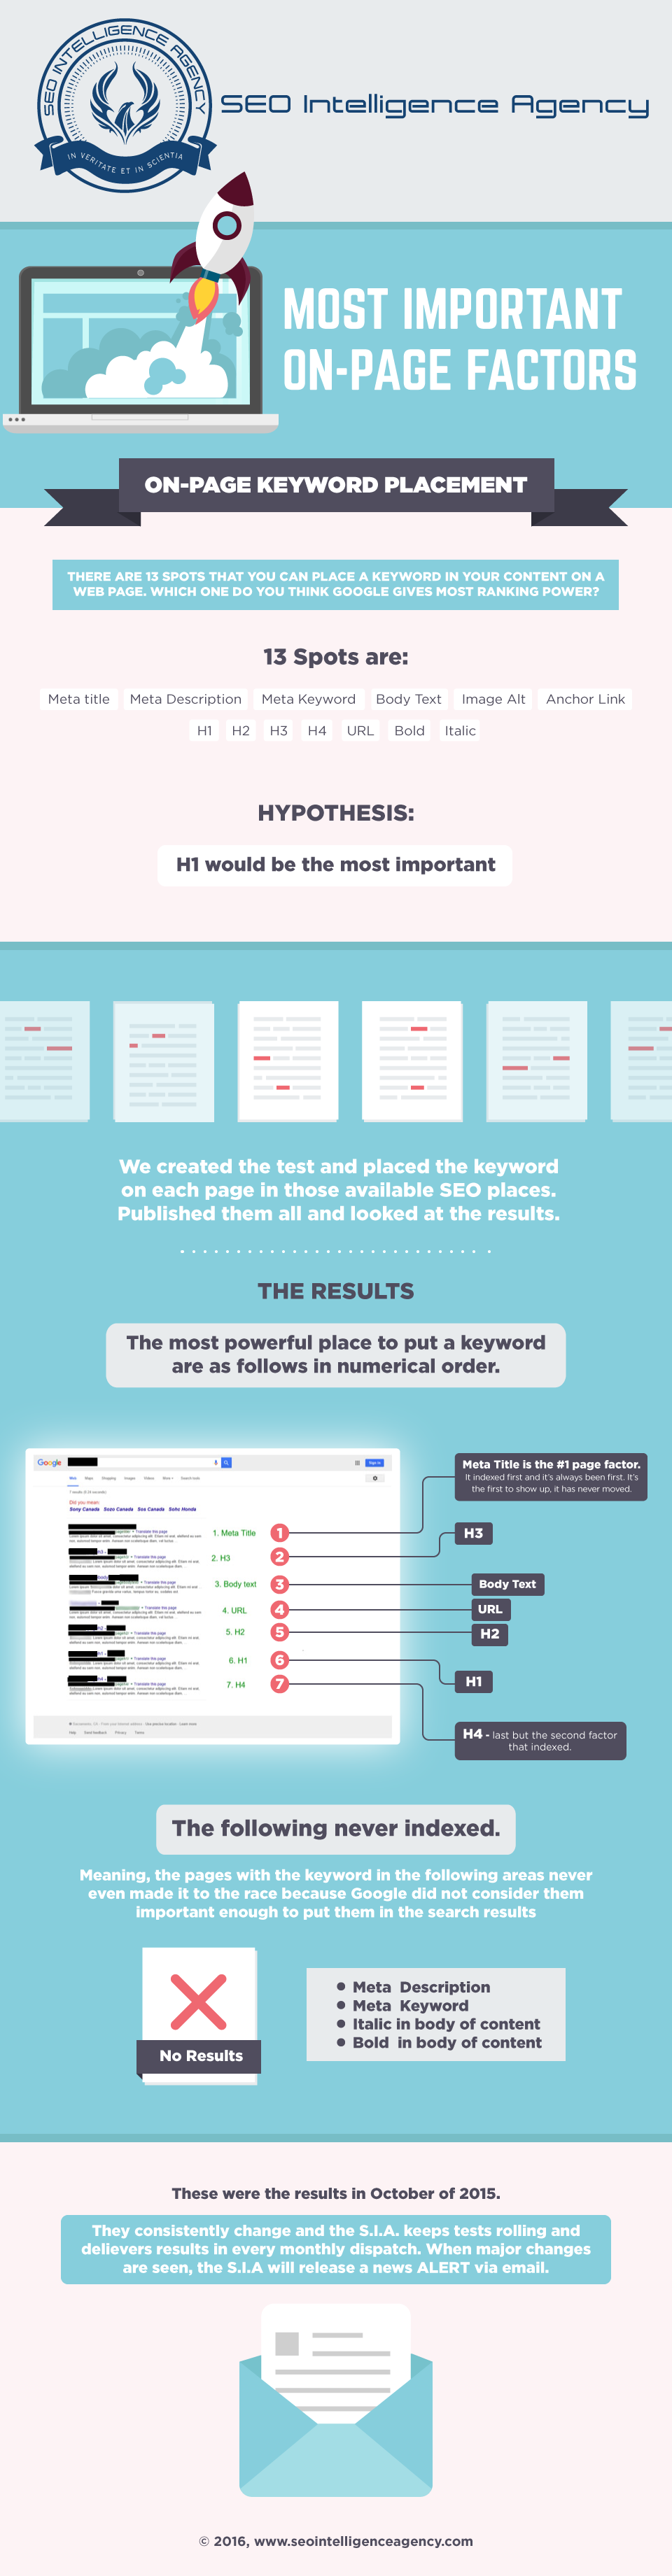 SEO Intelligence Agency OnPage Factors infographic